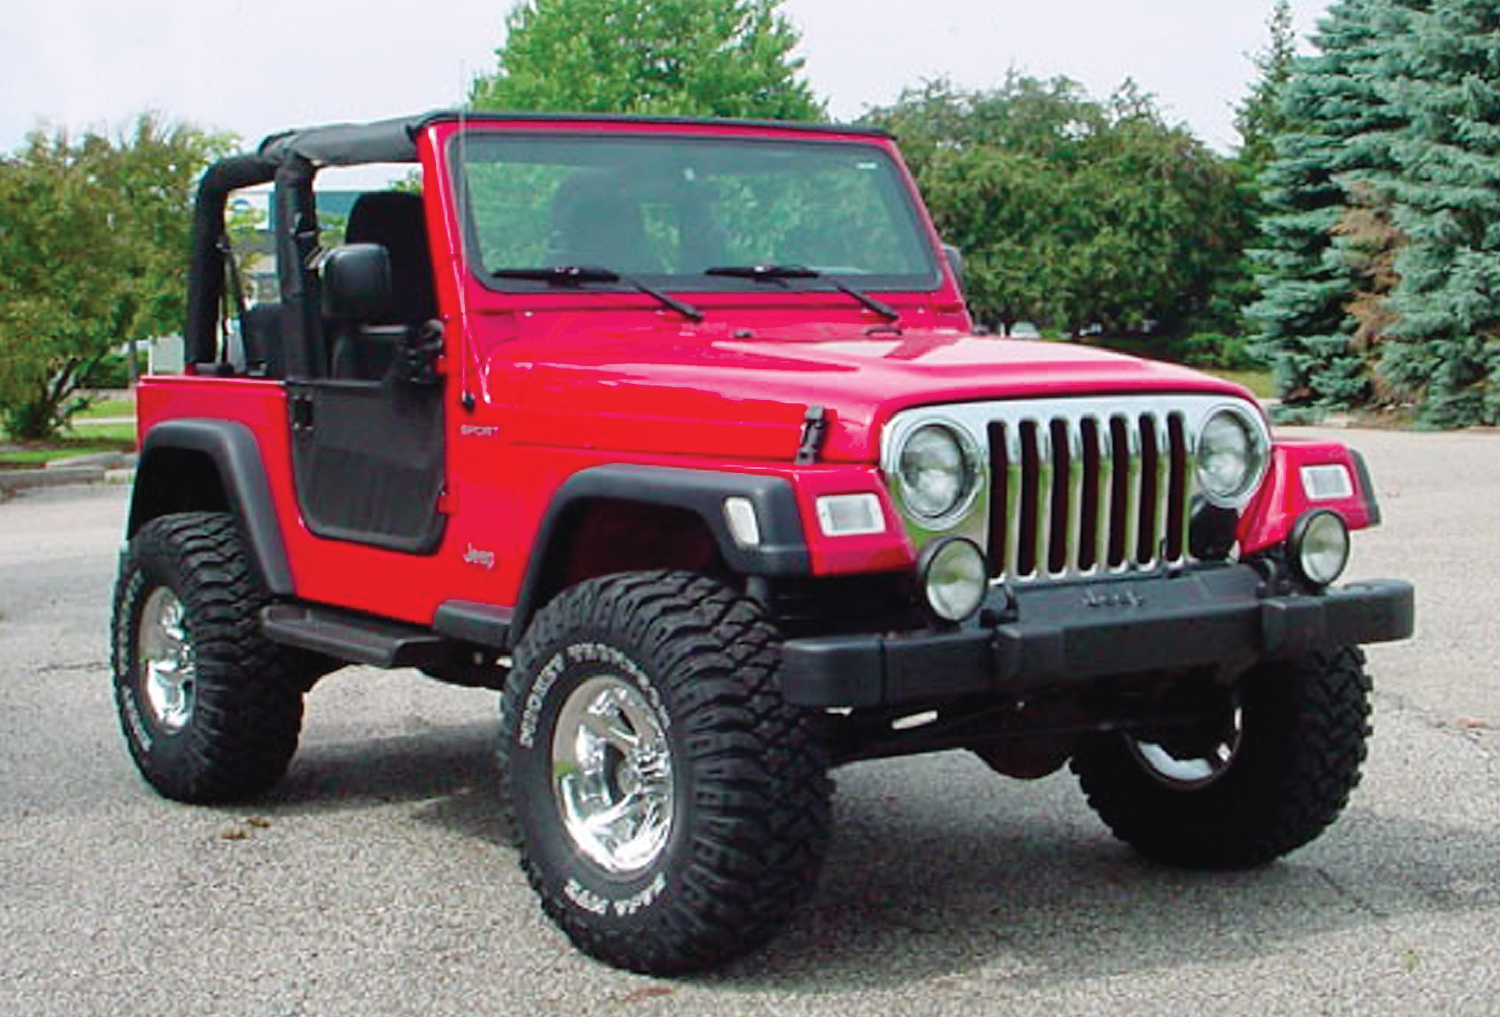 Buying Used Jeep Wrangler Tj 4x4 Magazine 2005 Suspension A Full Range Of Well Engineered Upgrades For The Including Most Basic Lifts Raising Body An Inch Above Chassis Makes Space